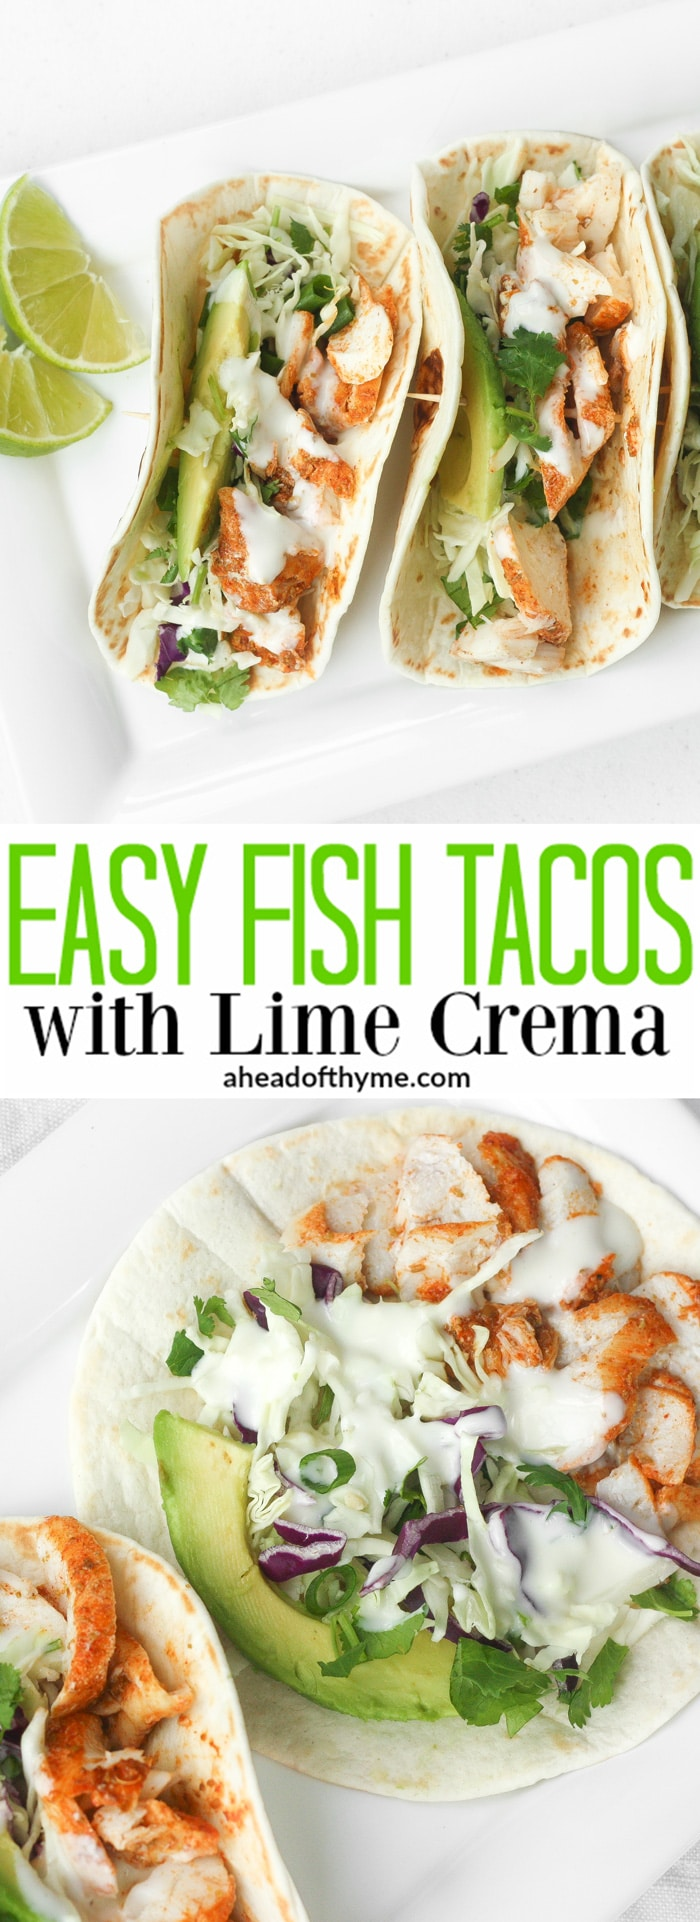 Easy Fish Tacos with Lime Crema: When lime and cilantro come together with fish, a mouthful of exquisite flavour is born. Try these easy fish tacos with lime crema and see for yourself! | aheadofthyme.com